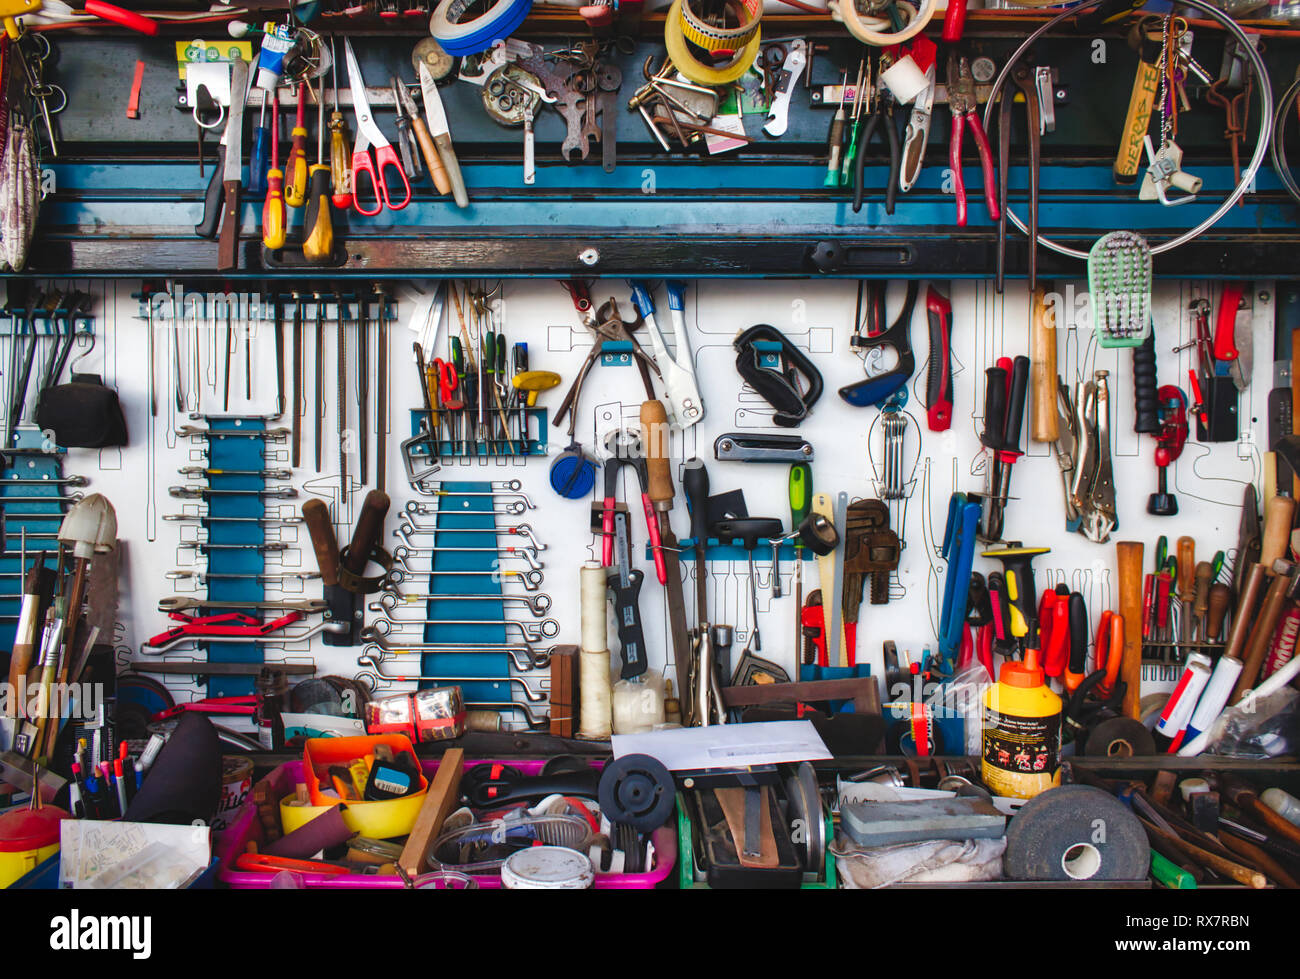 A collection of assorted tools hanging on the wall with a work bench in a garage - Stock Image